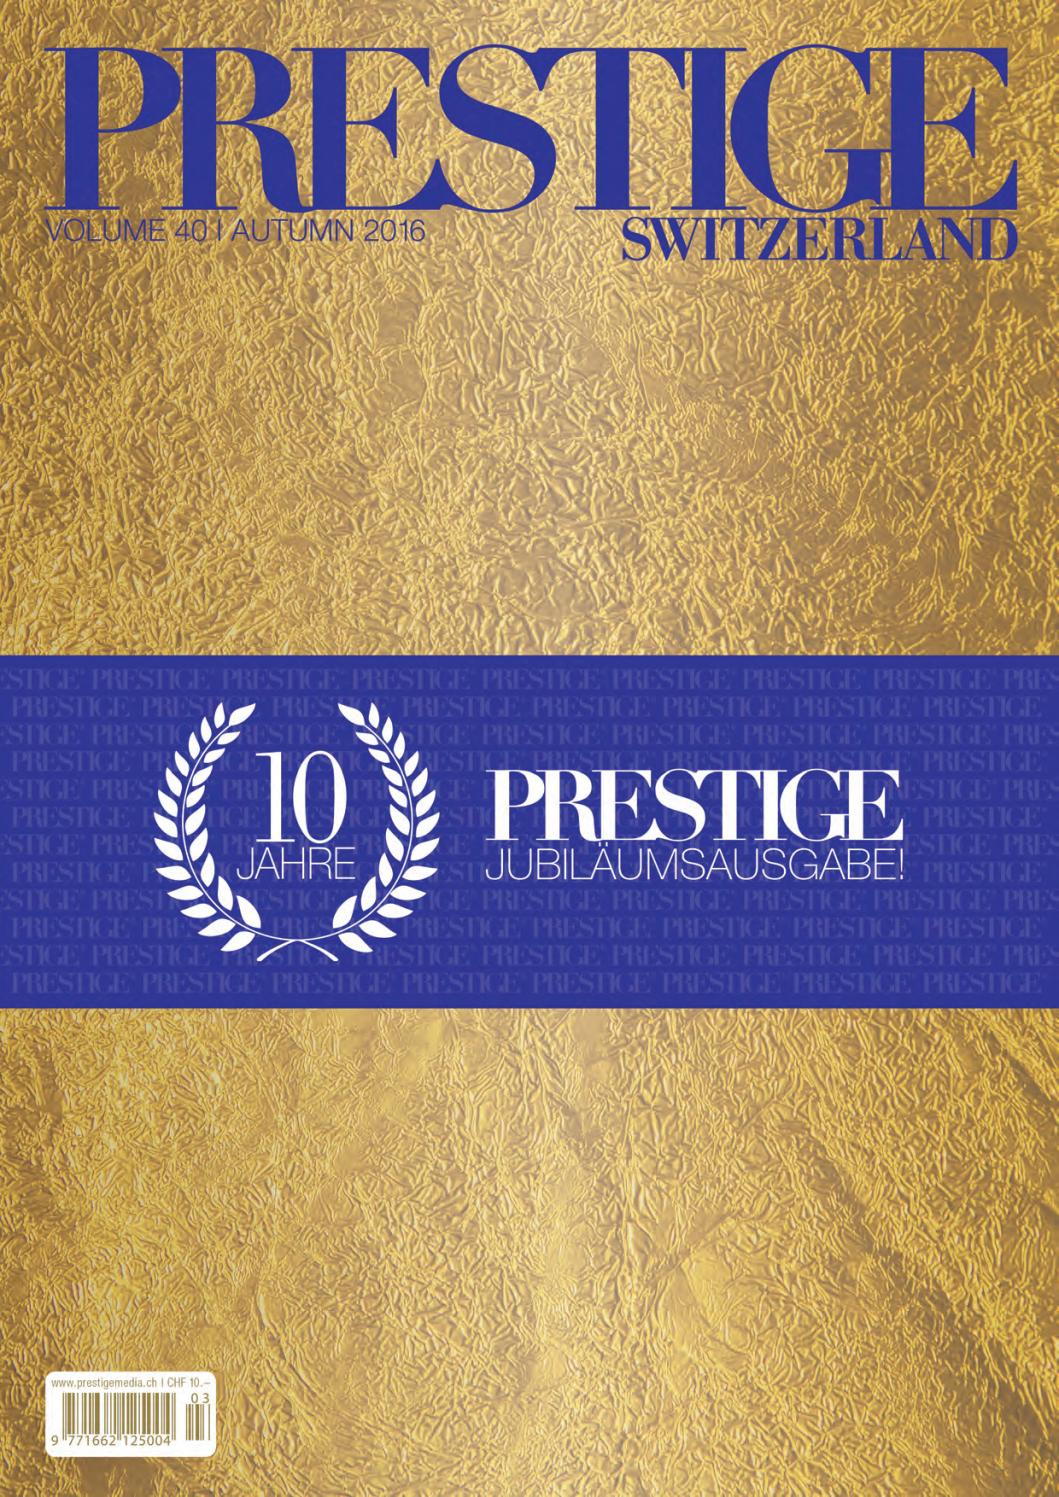 PRESTIGE Switzerland Volume 40 by rundschauMEDIEN AG - issuu